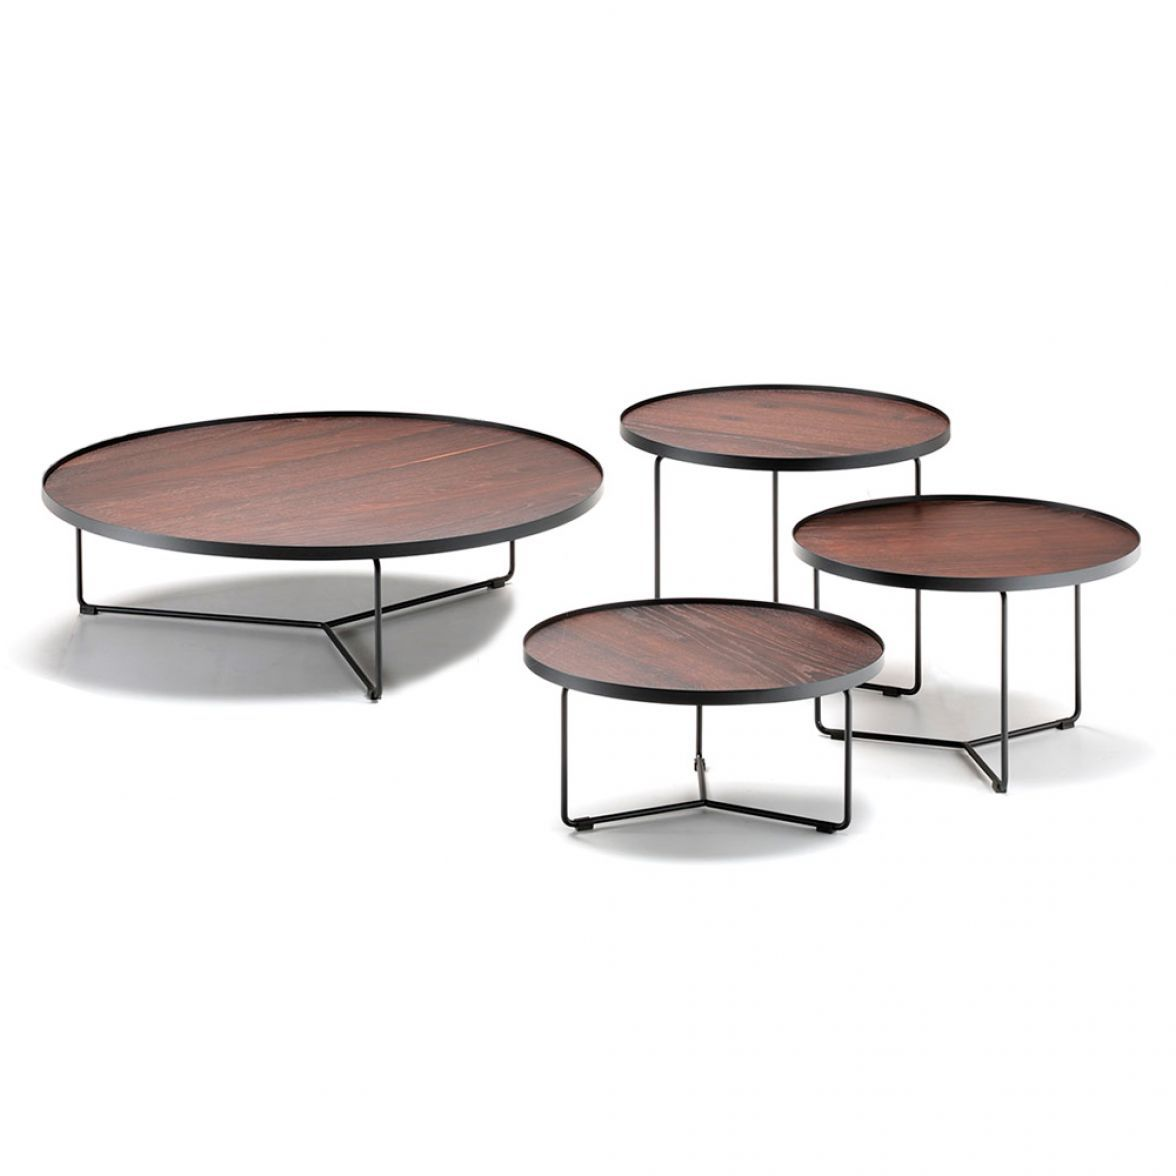 Billy wood coffee tables  фото цена